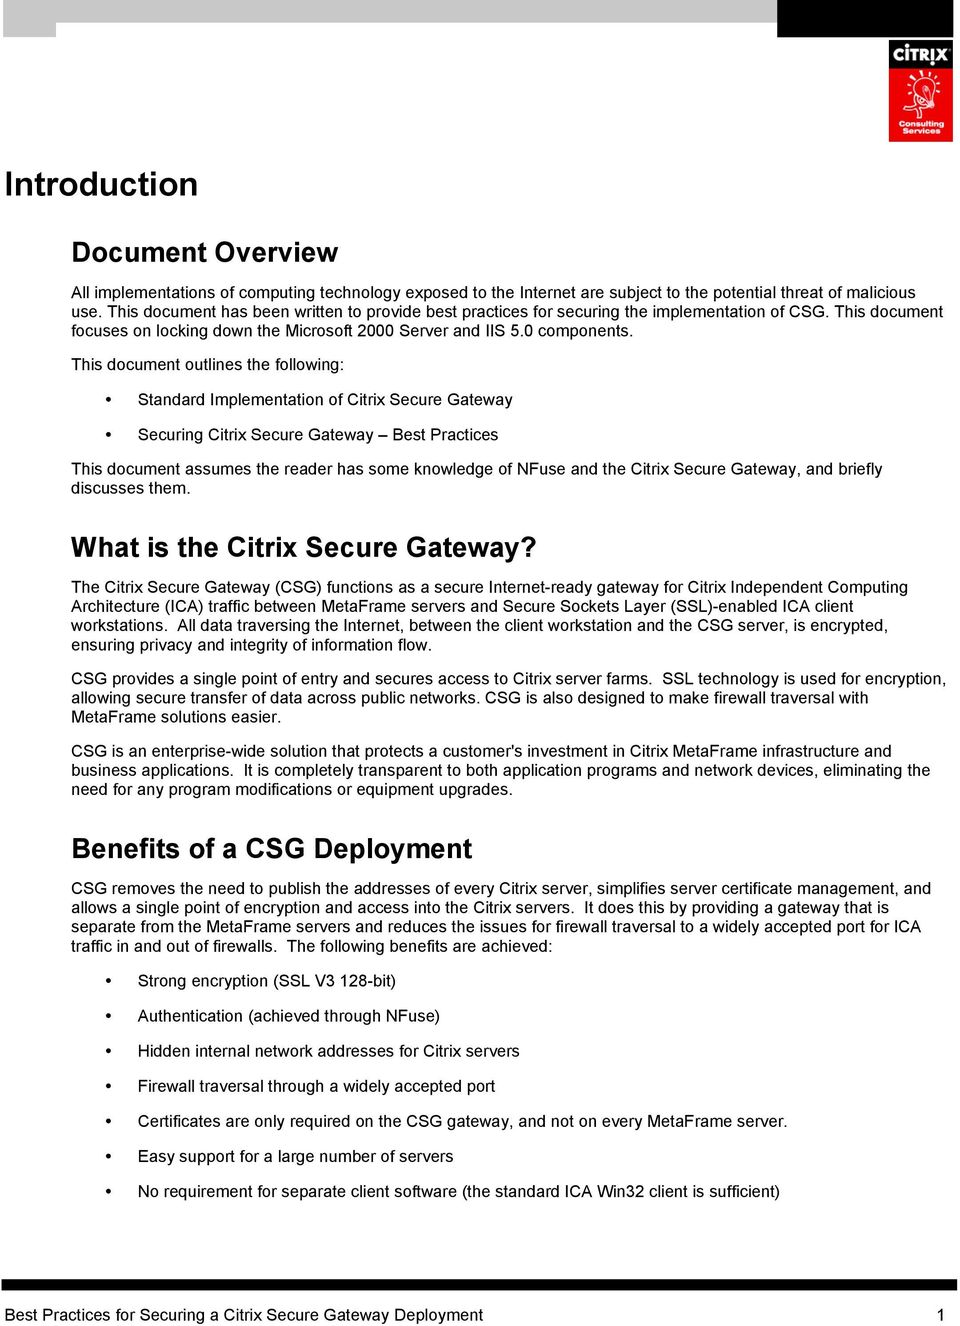 This document outlines the following: Standard Implementation of Citrix Secure Gateway Securing Citrix Secure Gateway Best Practices This document assumes the reader has some knowledge of NFuse and